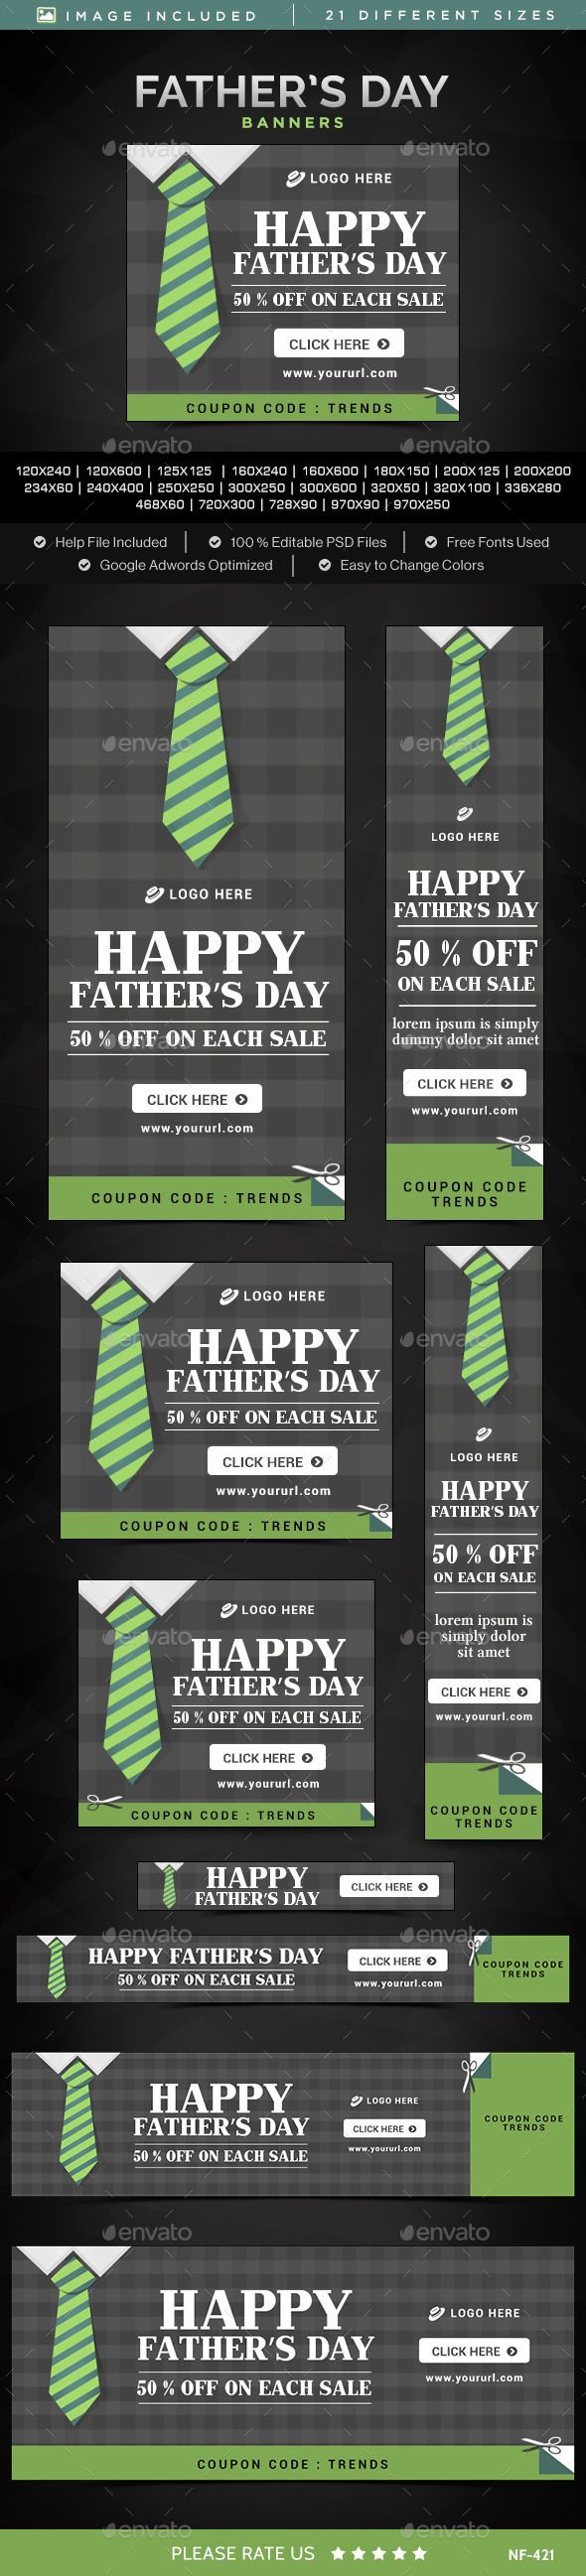 Father's Day Sale Banners - #Banners & #Ads #Web #Elements Download here: https://graphicriver.net/item/fathers-day-sale-banners/11742264?ref=alena994